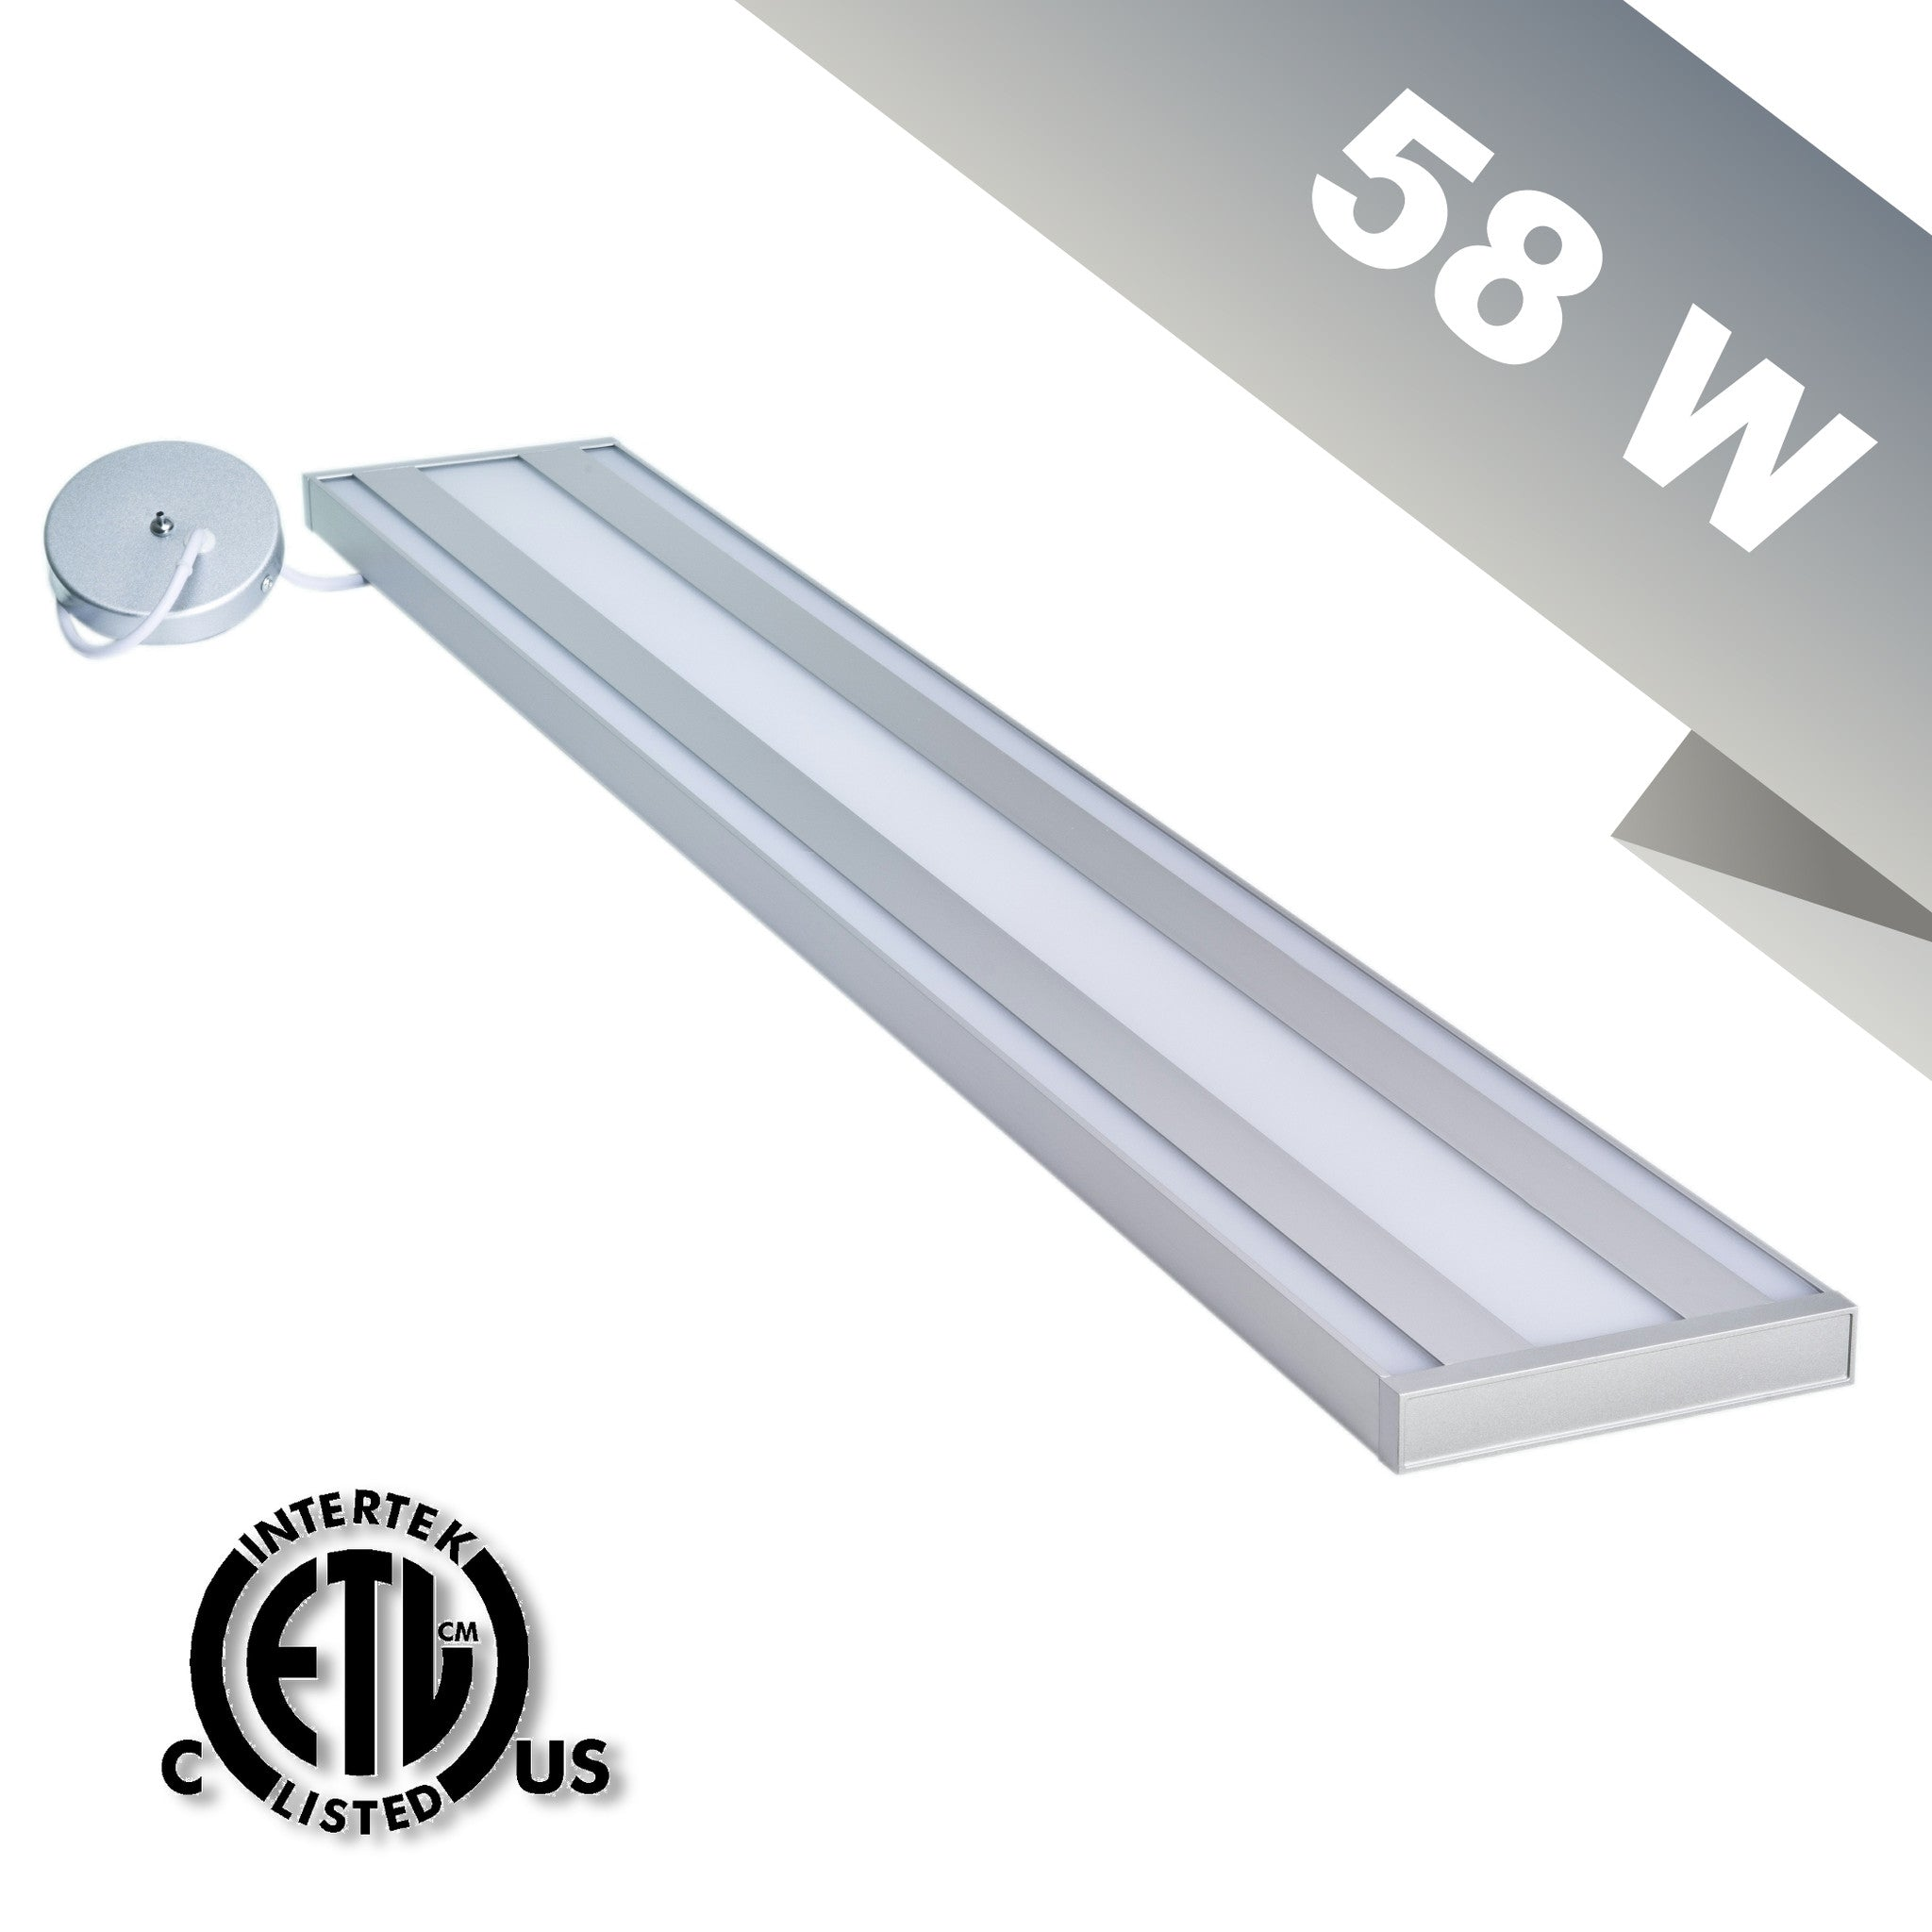 58 Watt NLCO LED Pendant Fixture, Day White Light (4000